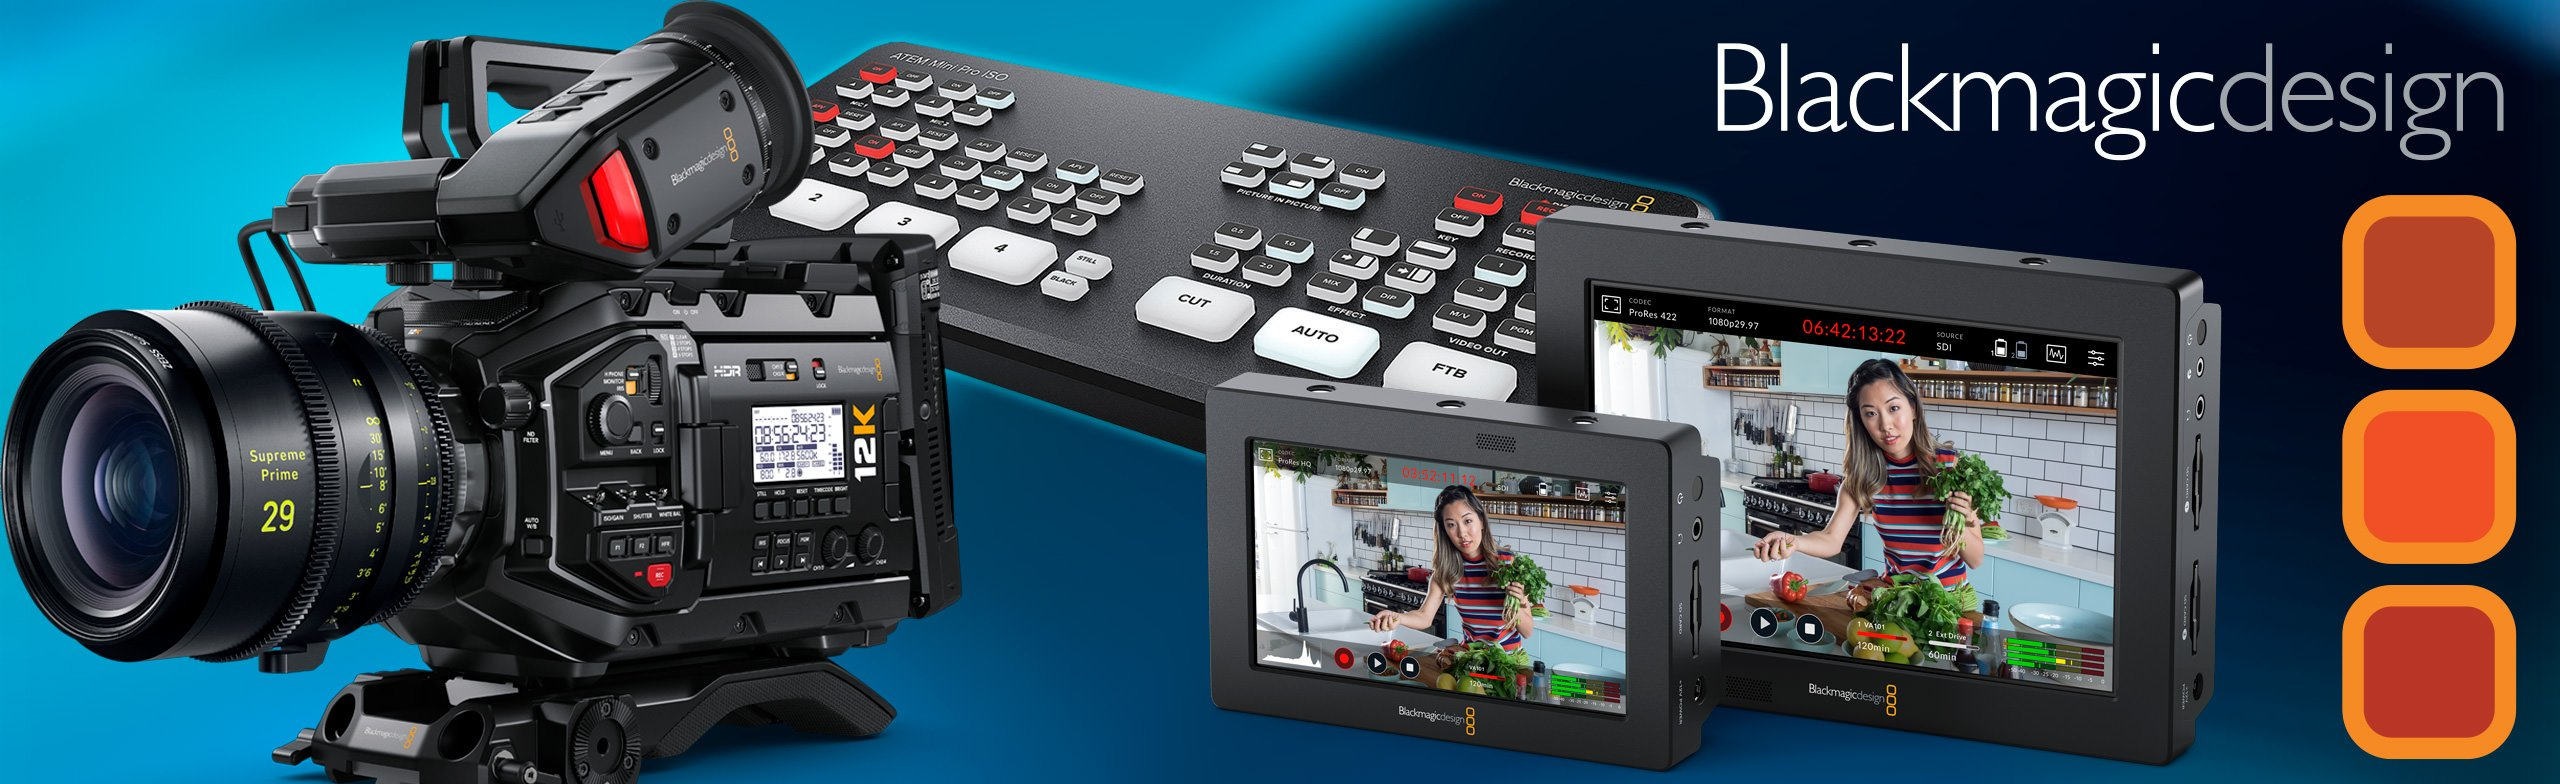 all of the latest blackmagic gear from markertek